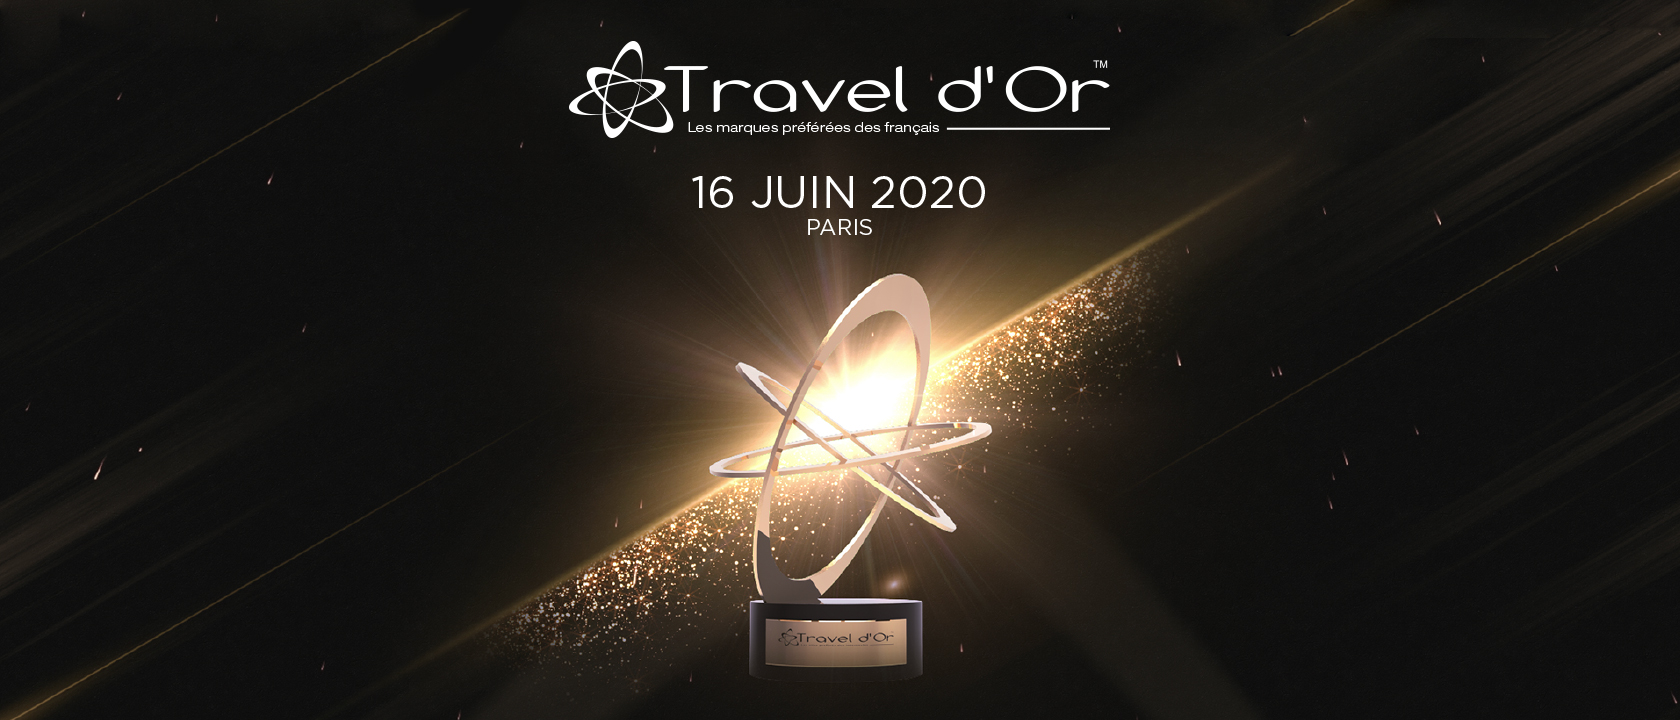 travel d'or 2020 - 16 juin